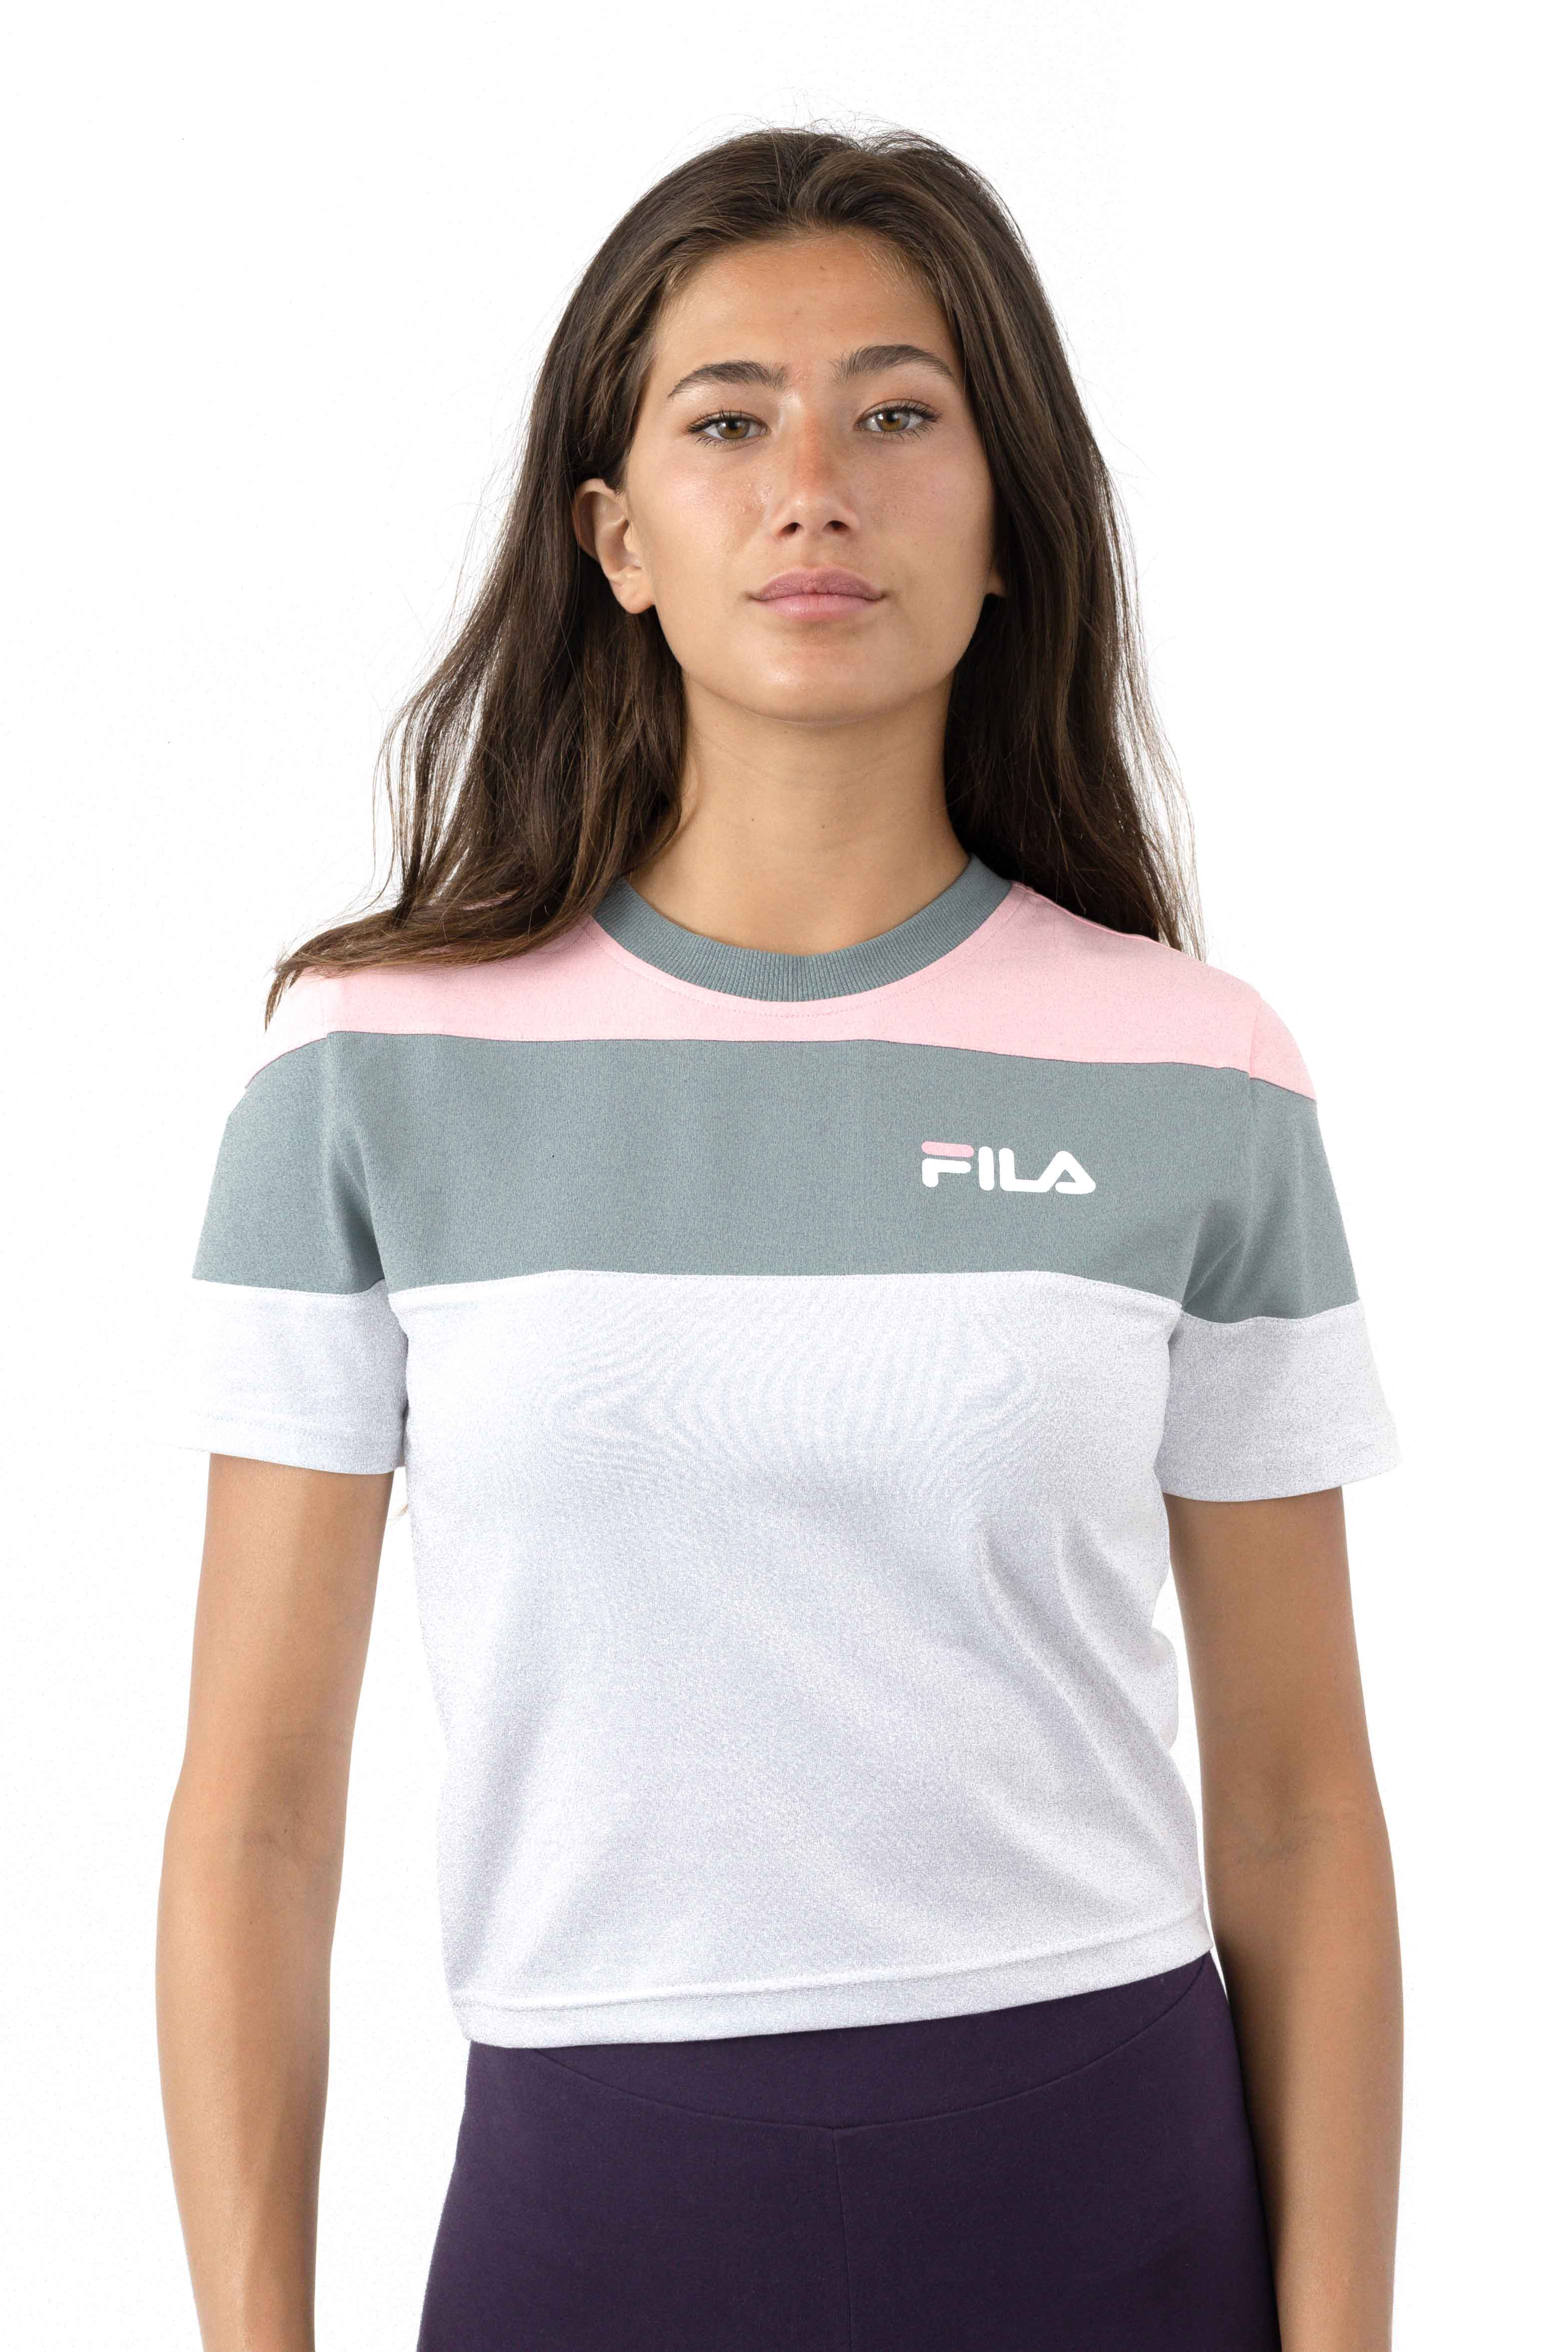 Filawomens Maya Crop Tee - White/Lead/Candy Pink